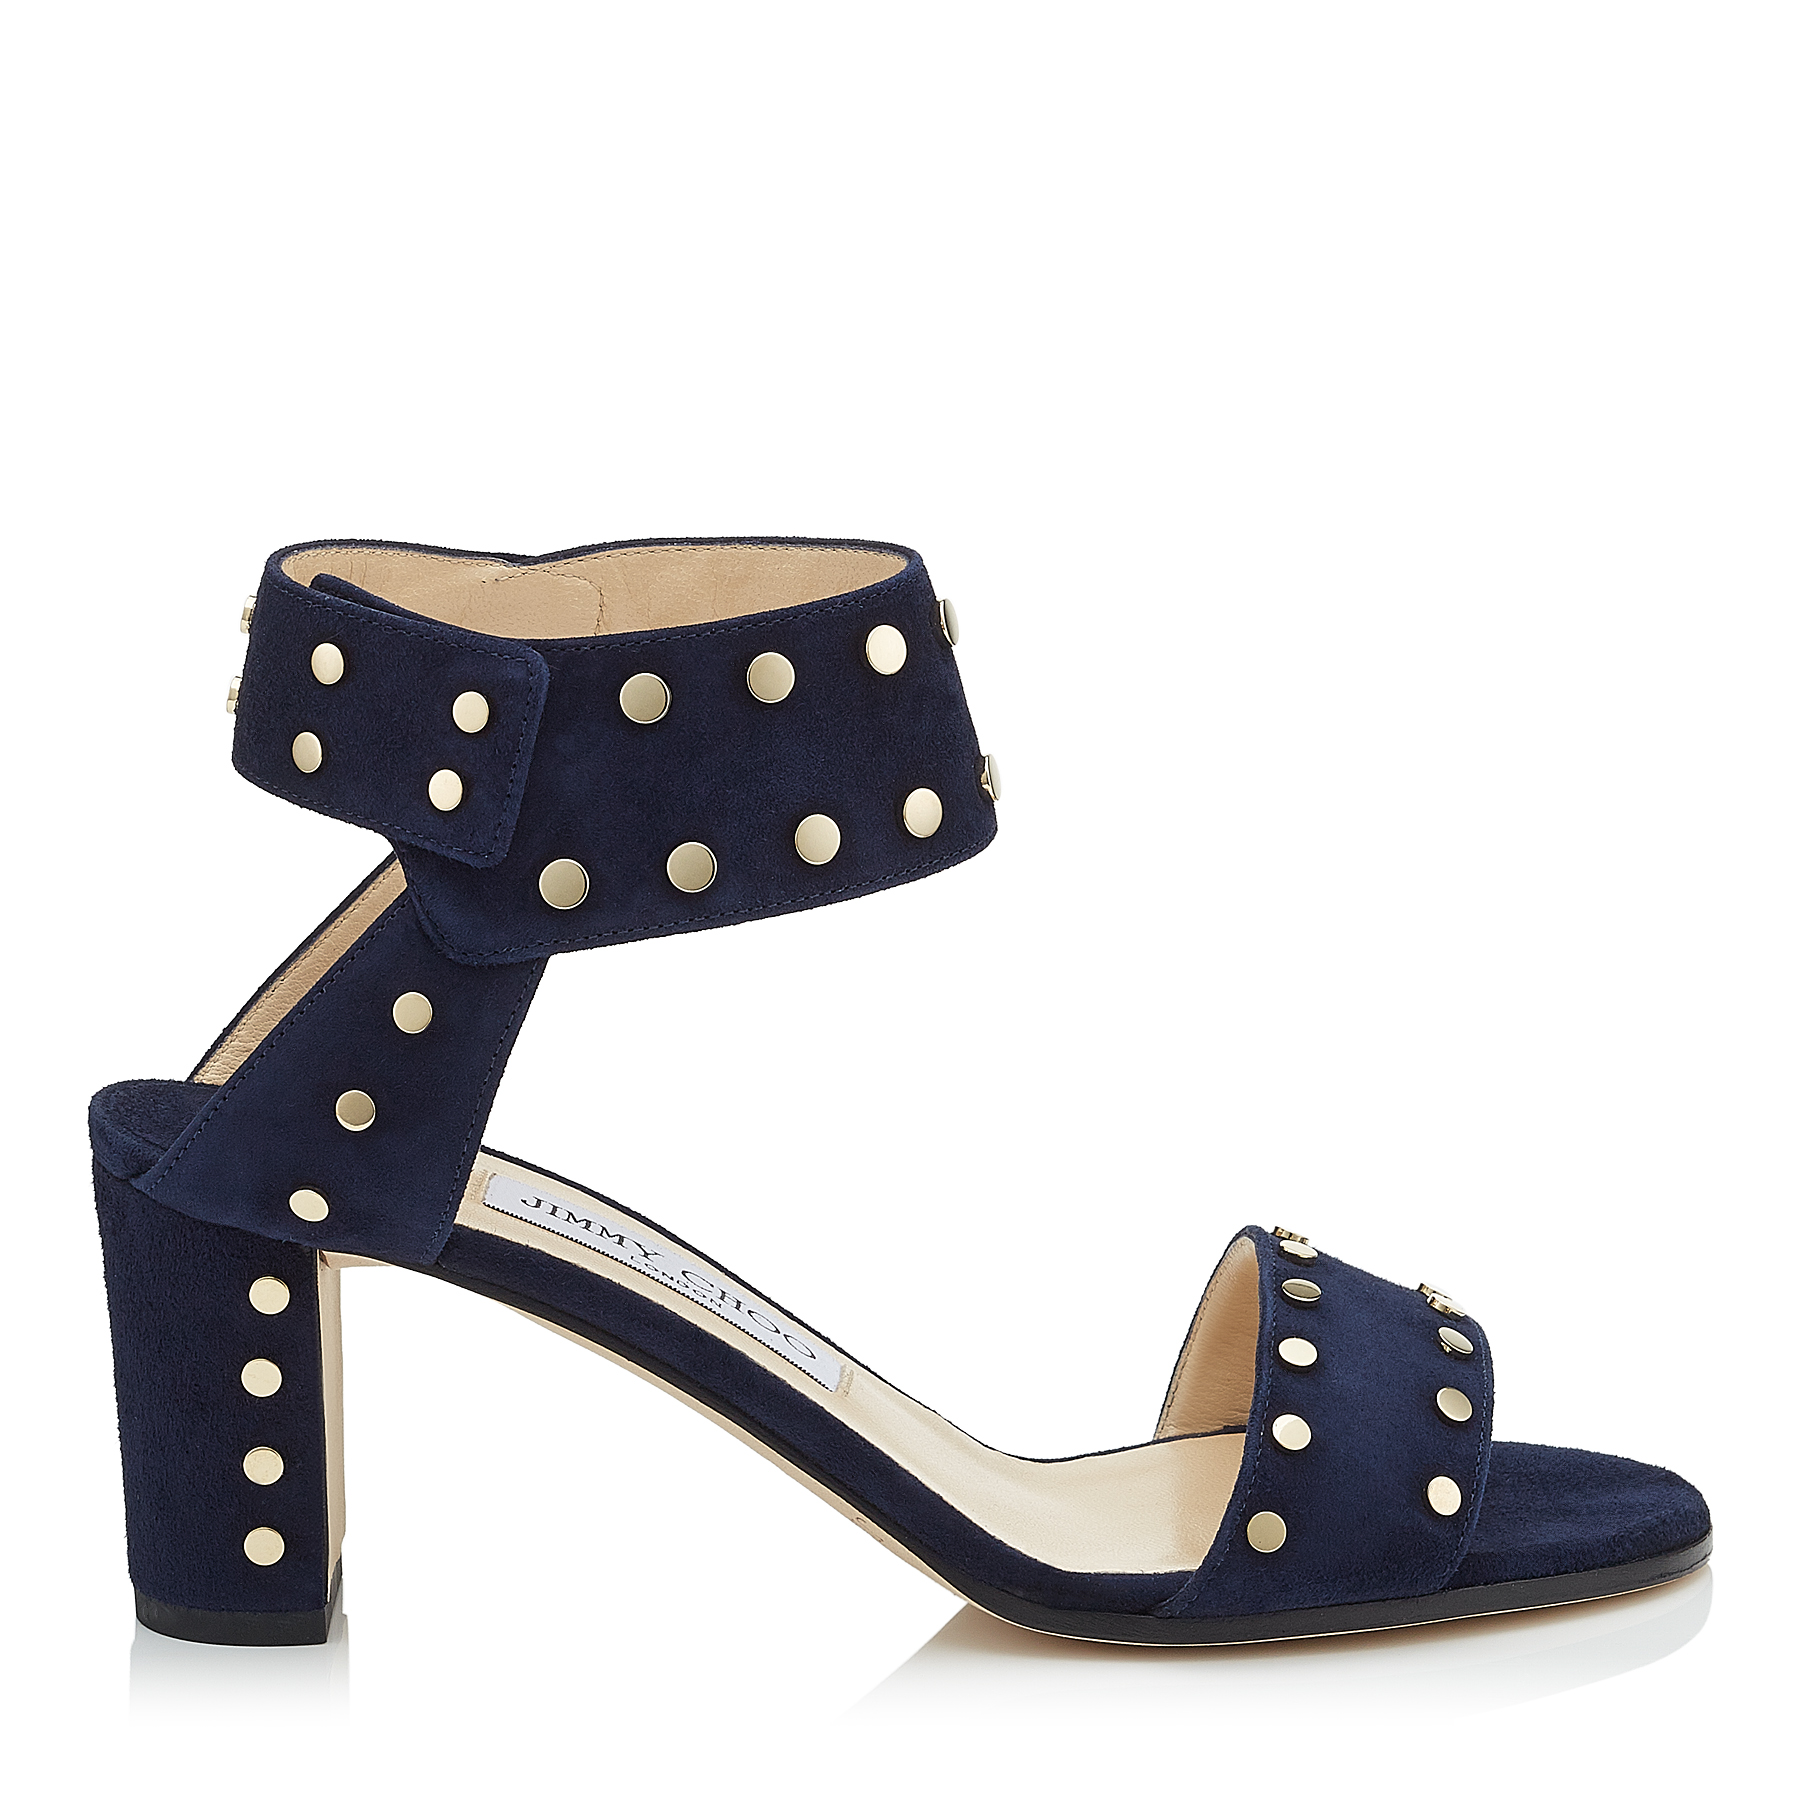 VETO 65 Navy Suede Sandals with Gold Studs